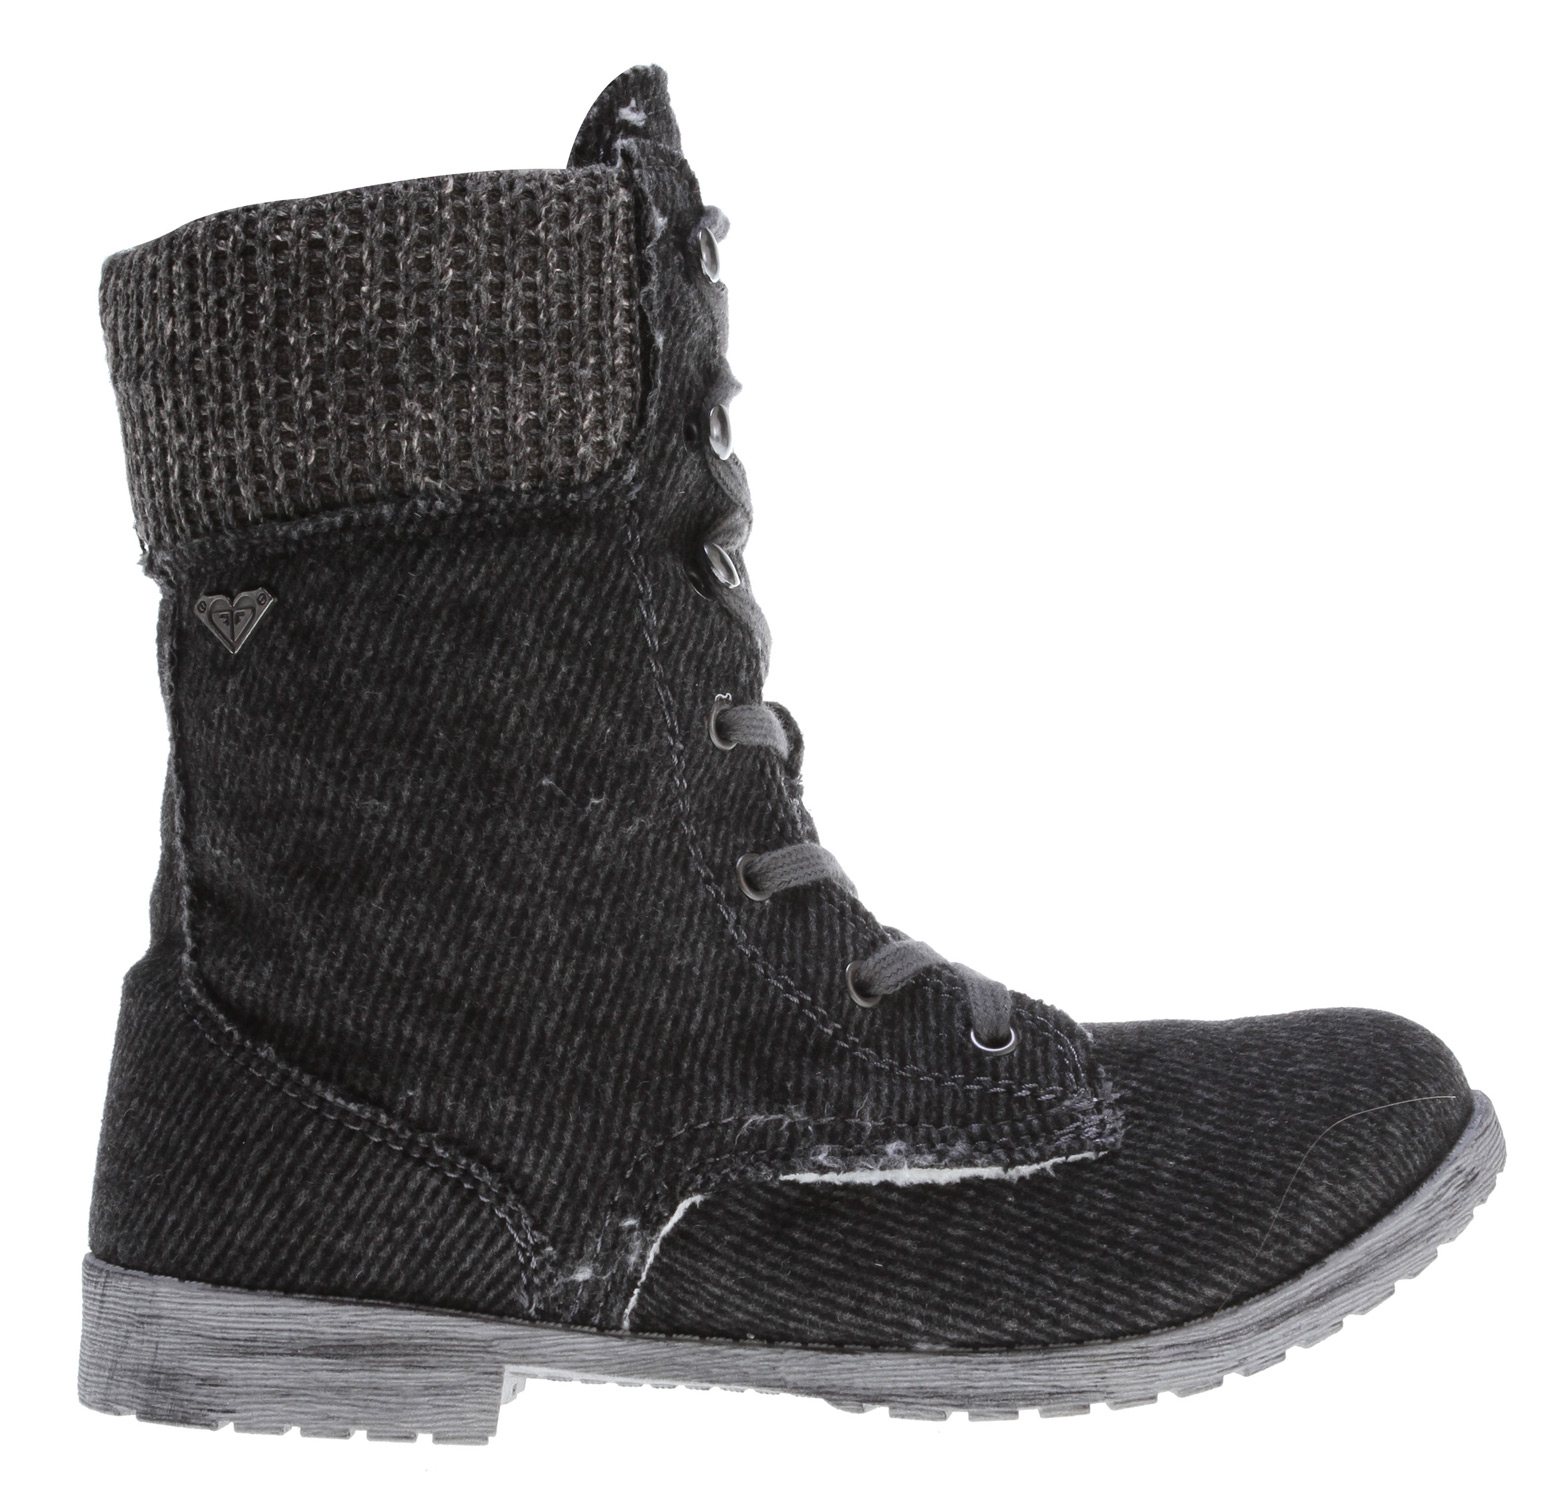 Surf Key Features of the Roxy Denver Boots: wool upper with sweater knit collar interior side zipper soft cotton laces with metal hooks and eyelets metal logo pin cozy faux fur upper and footbed lining padded insole flexible TPR injected outsole boxed - $68.00